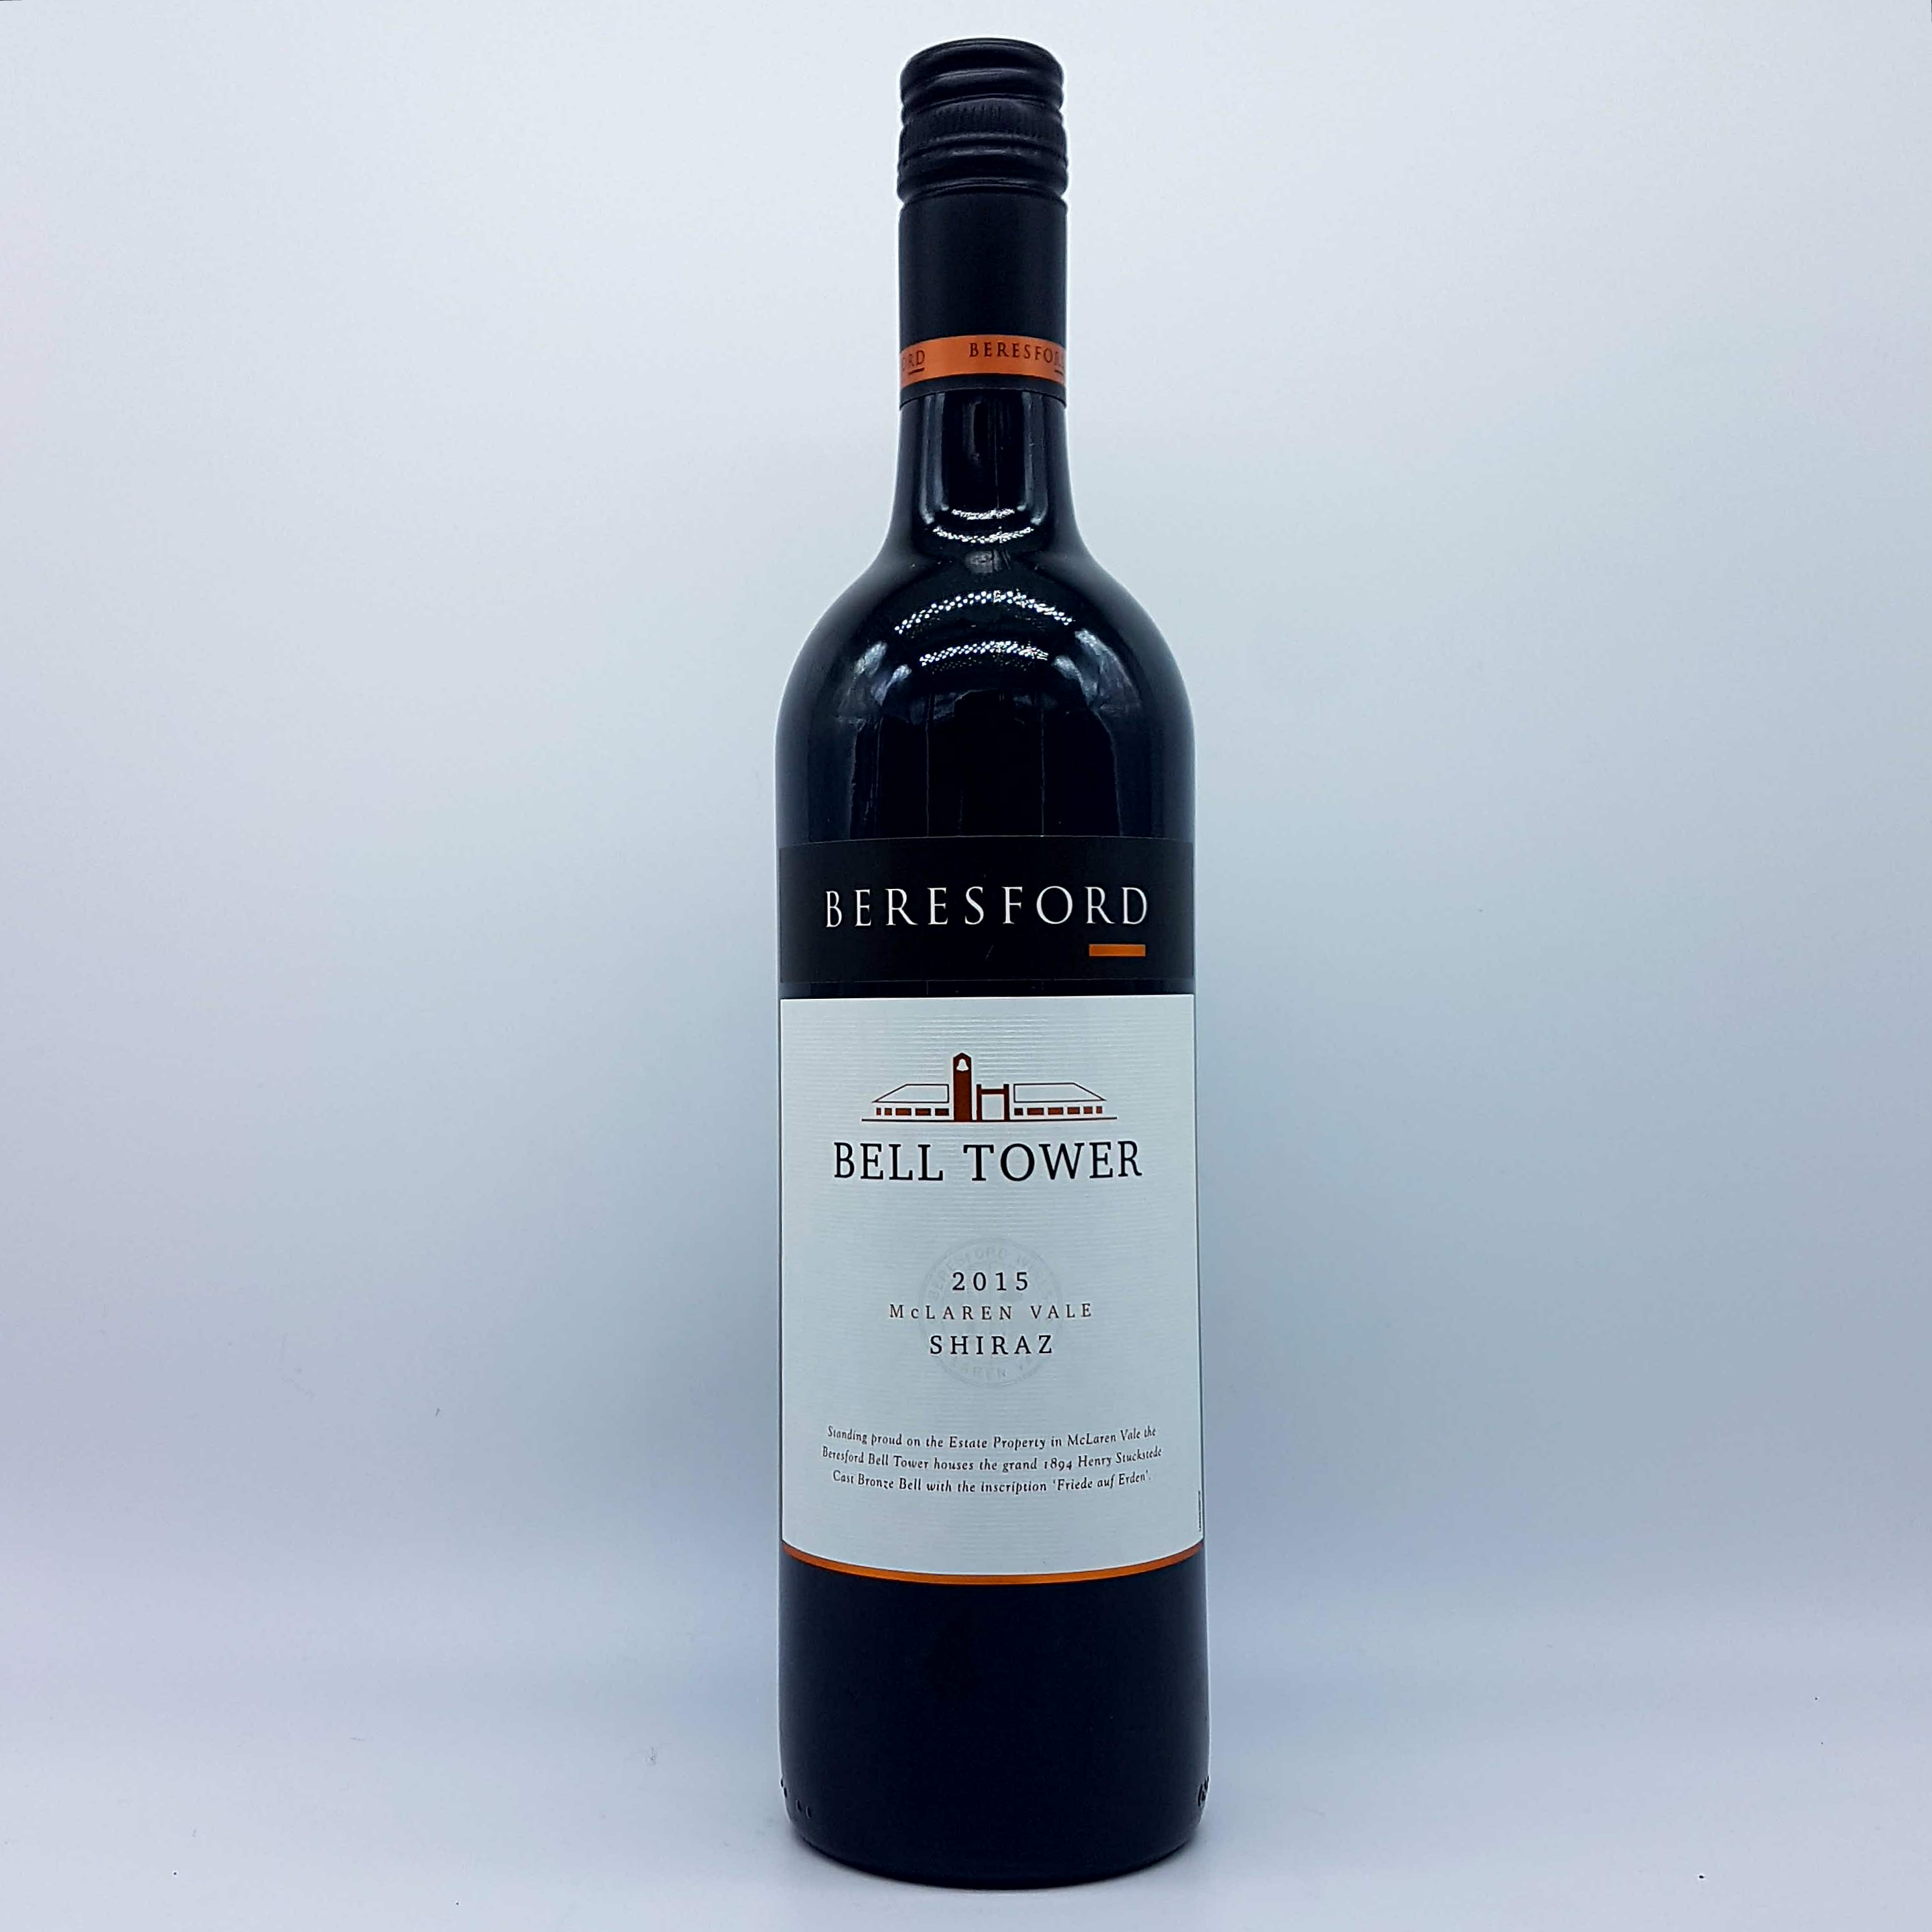 2015 beresford bell tower shiraz - quality wines from peter osborne